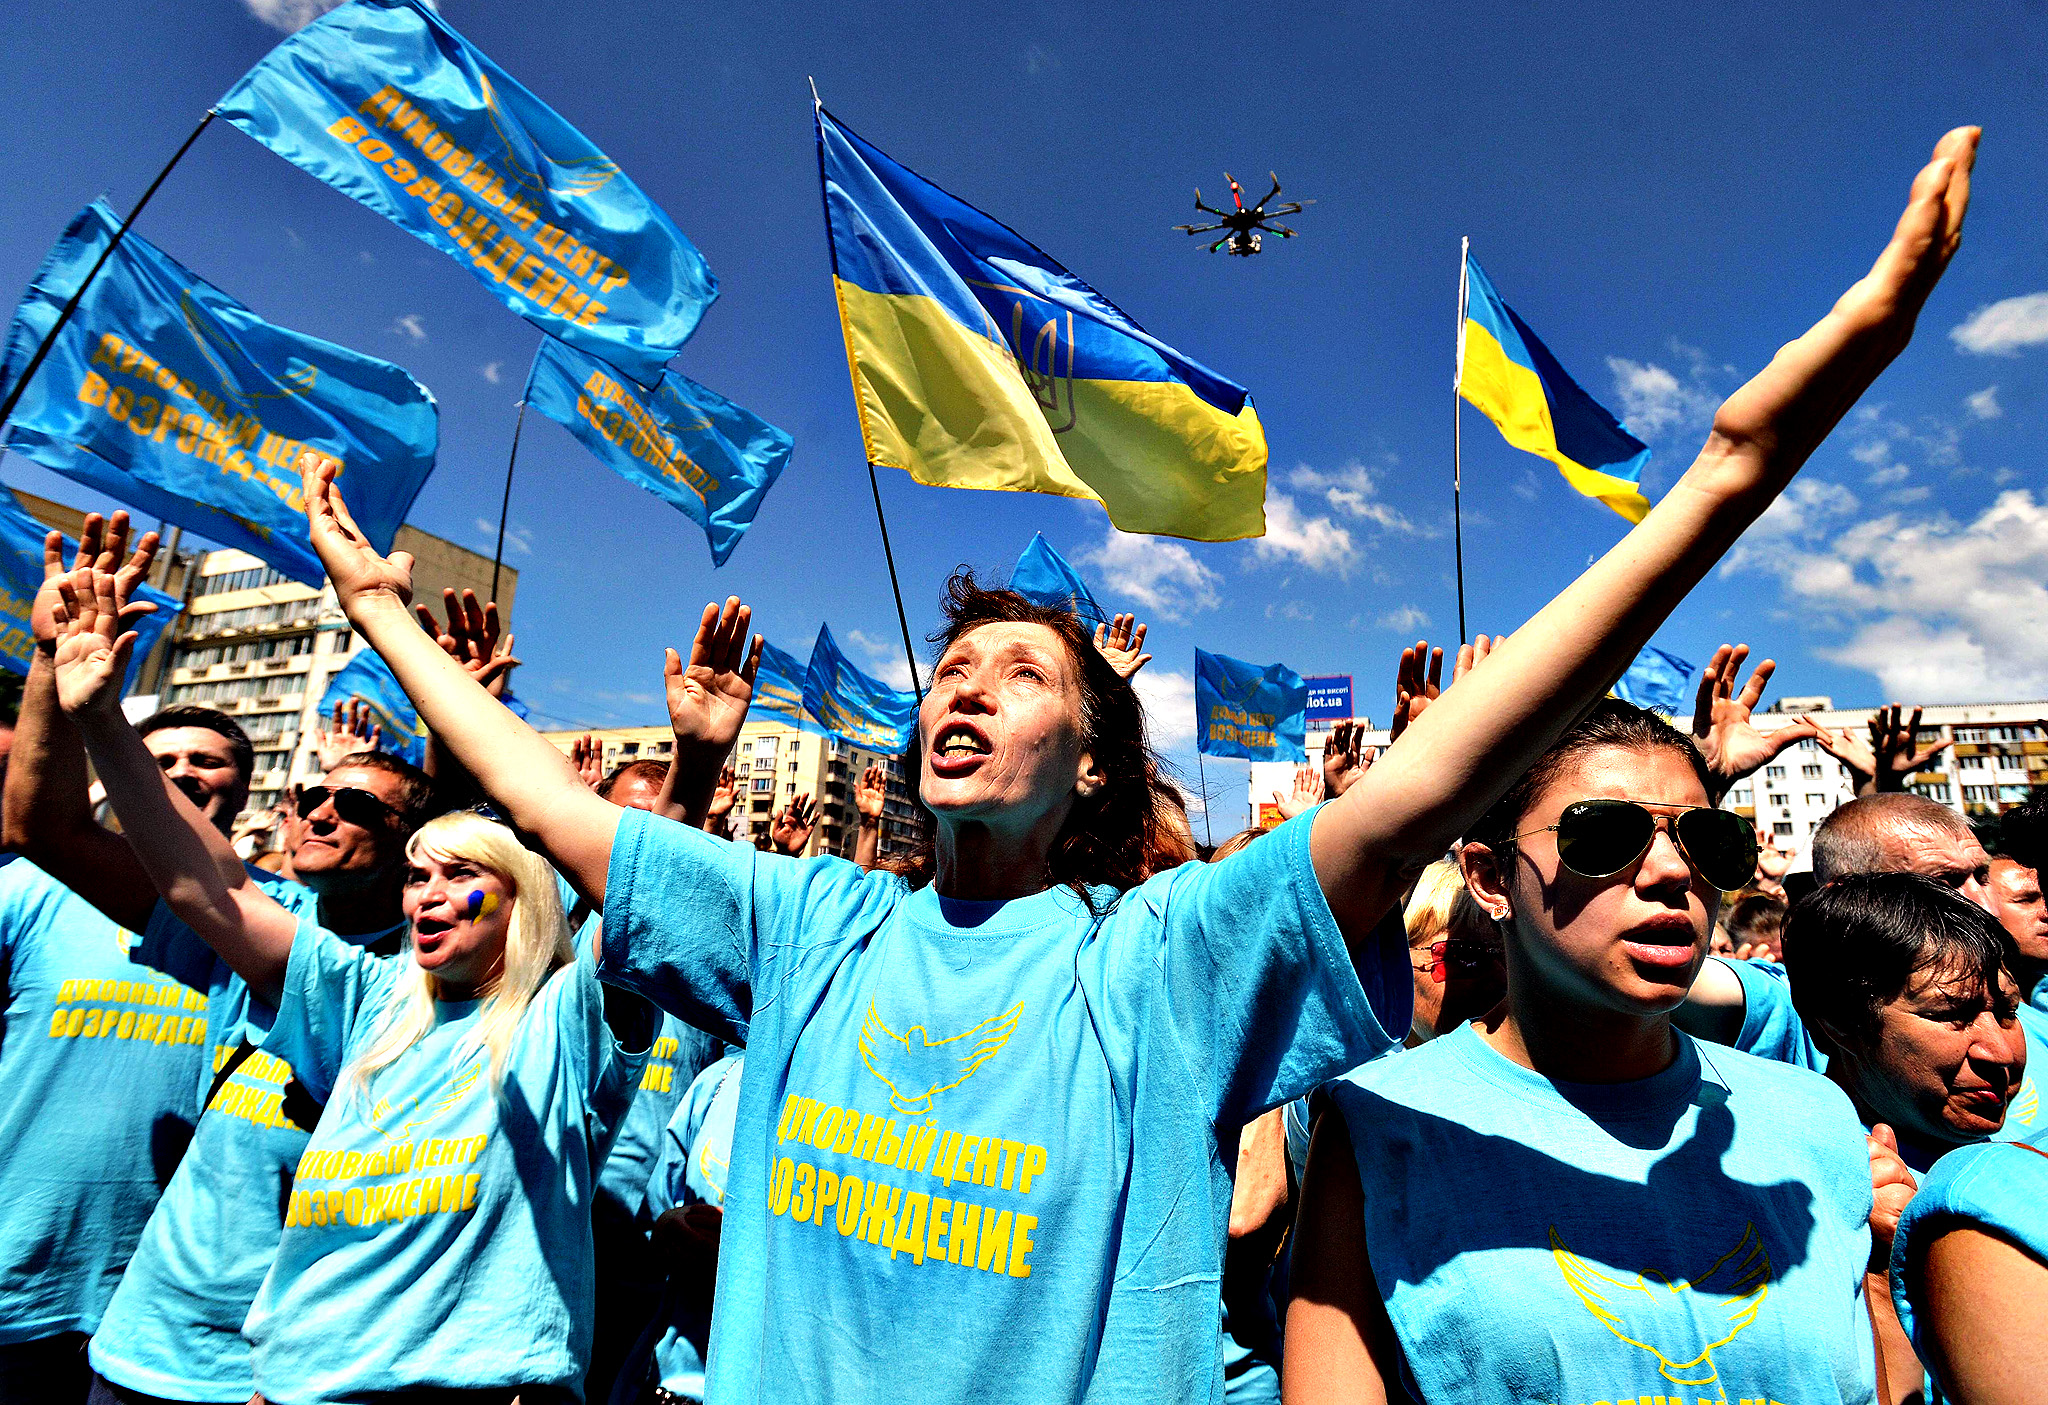 People take part in a mass prayer for peace in downtown Kiev on June 19, 2014. Ukraine's new Western-backed president announced plans on JUne 18 to order a unilateral ceasefire in the separatist east that could help end a bloody pro-Russian insurgency and avert his ex-Soviet country's breakup.